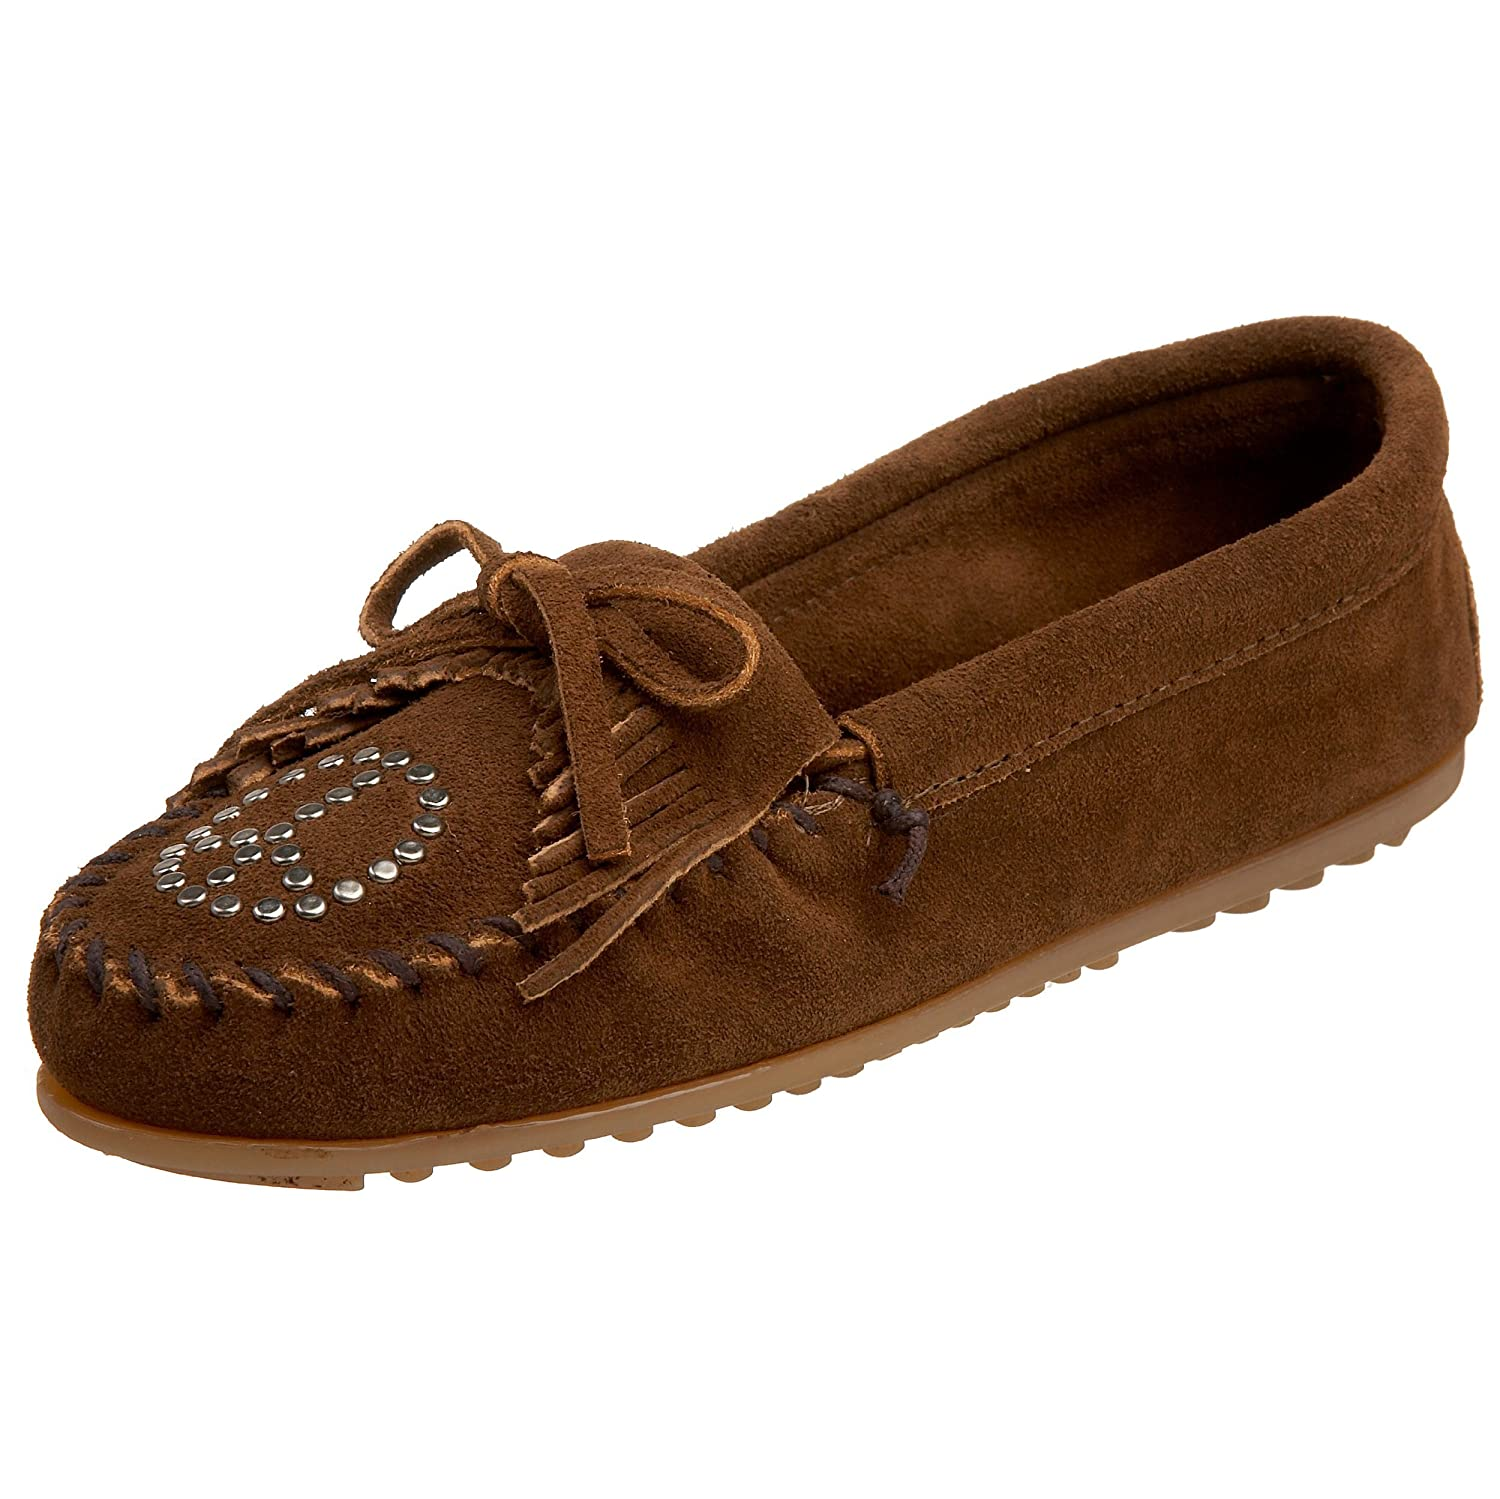 Amazon | Minnetonka Women's Kilty Peace Sign Moccasin | Loafers &  SlipOns